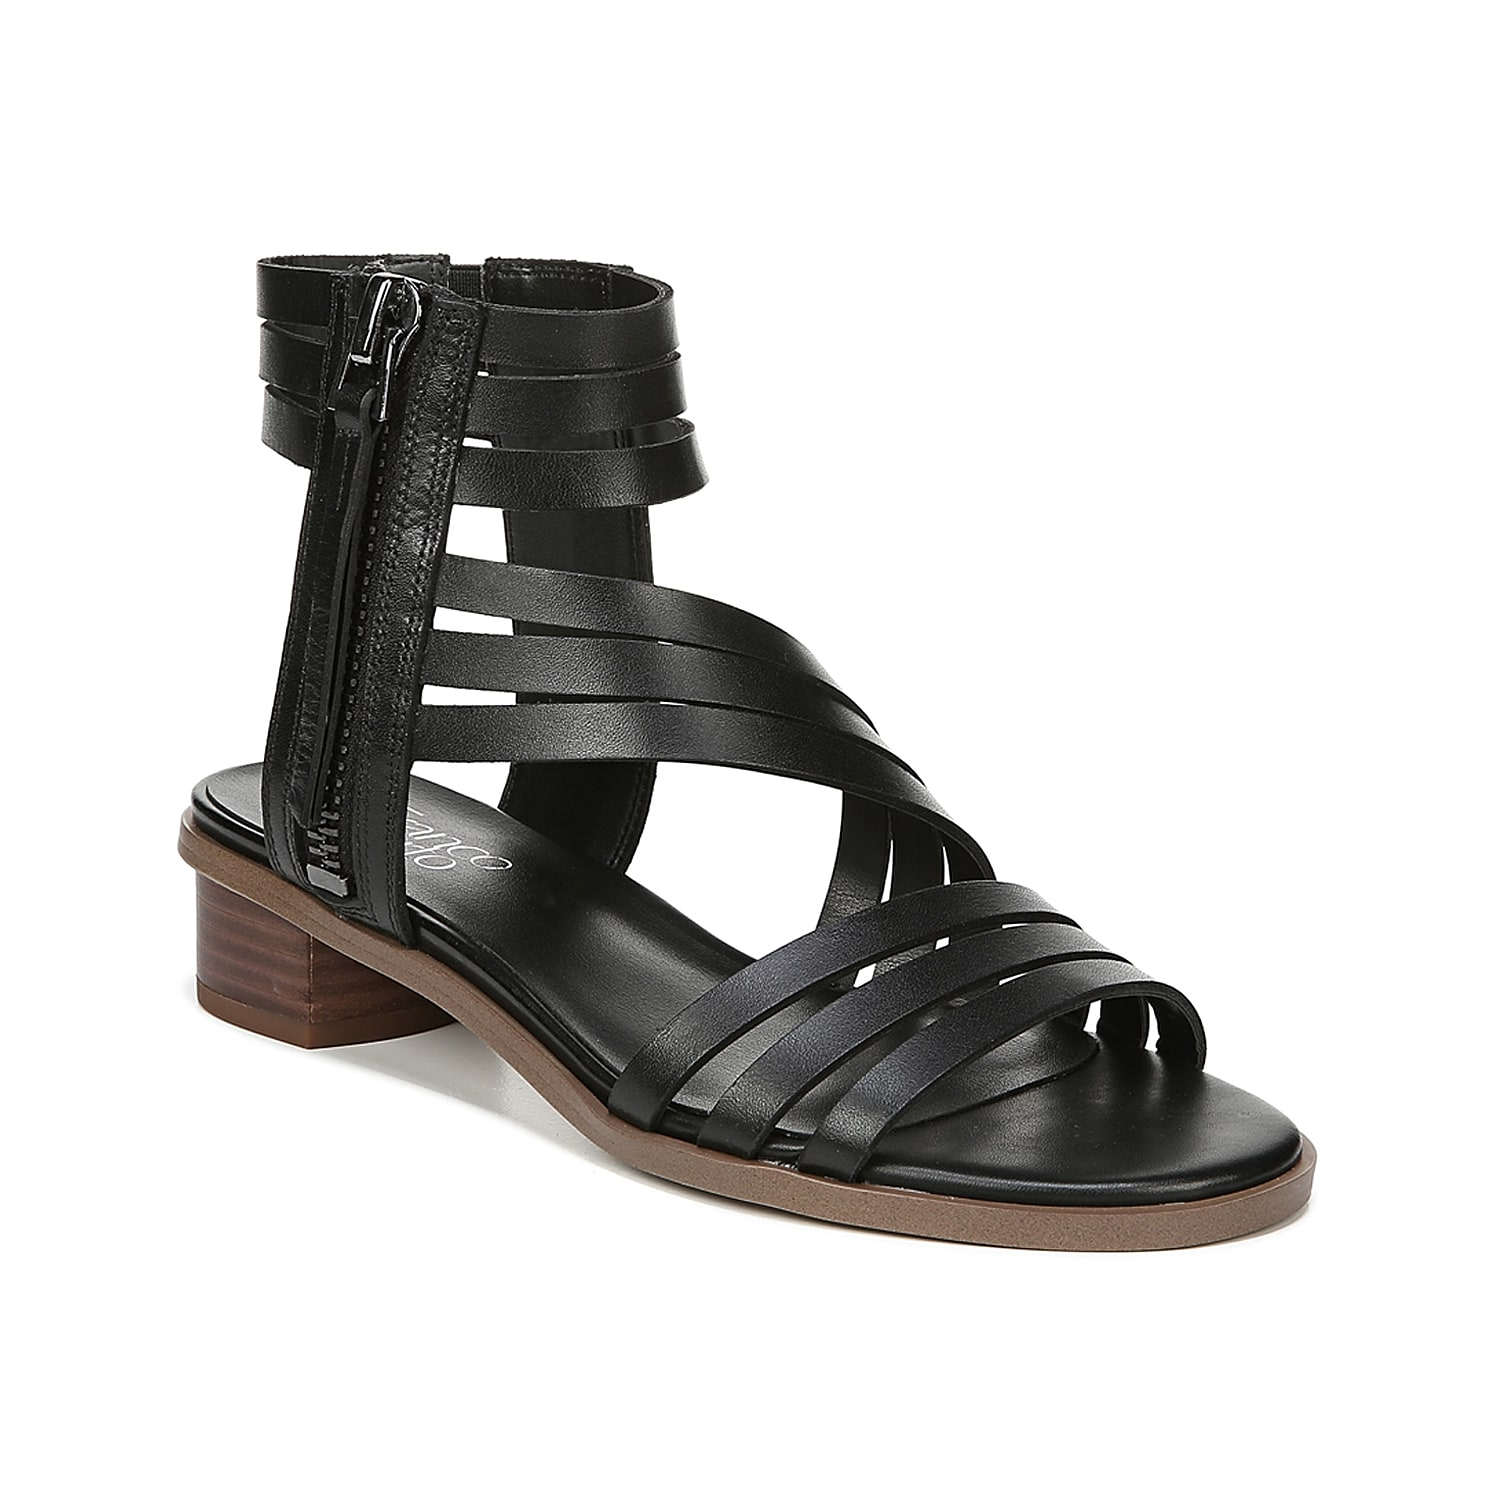 Bring a bit of attitude to your outfit with the Elma sandal from Franco Sarto. This leather pair features dramatic straps and is complete with a low block heel for a hint of height.